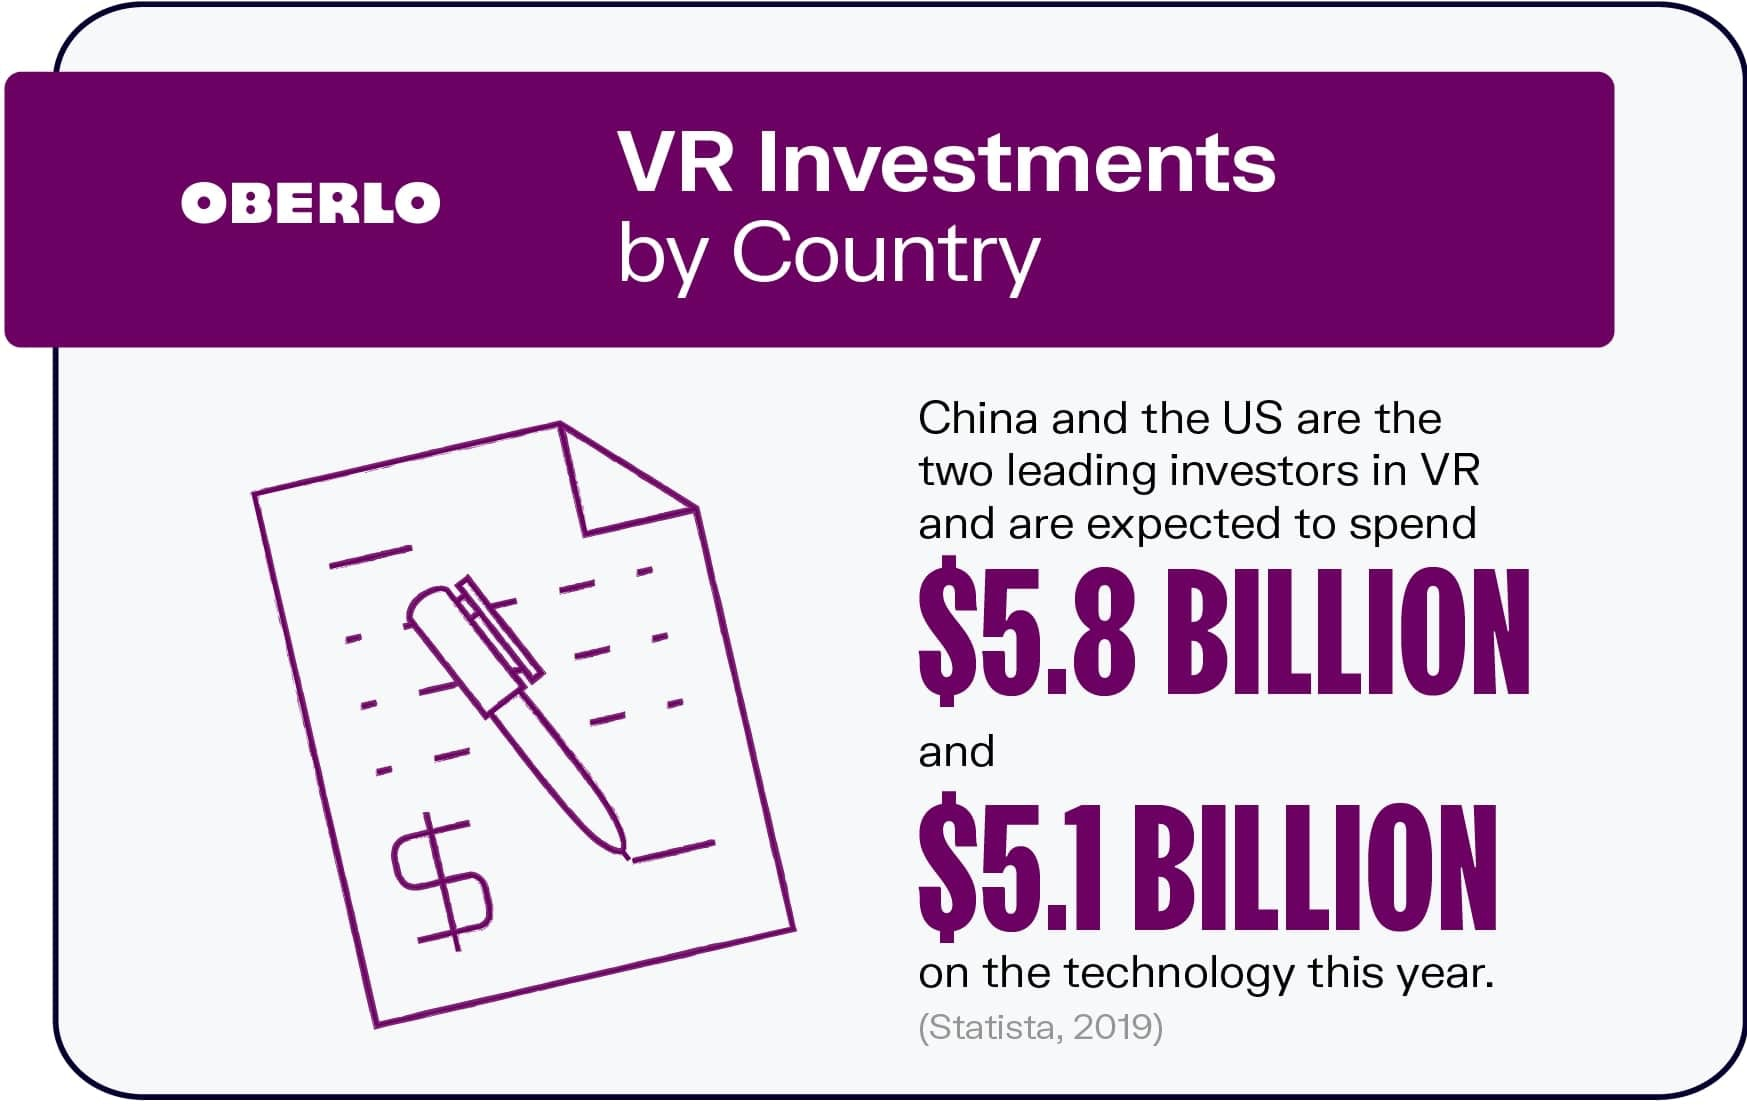 VR Investments by Country